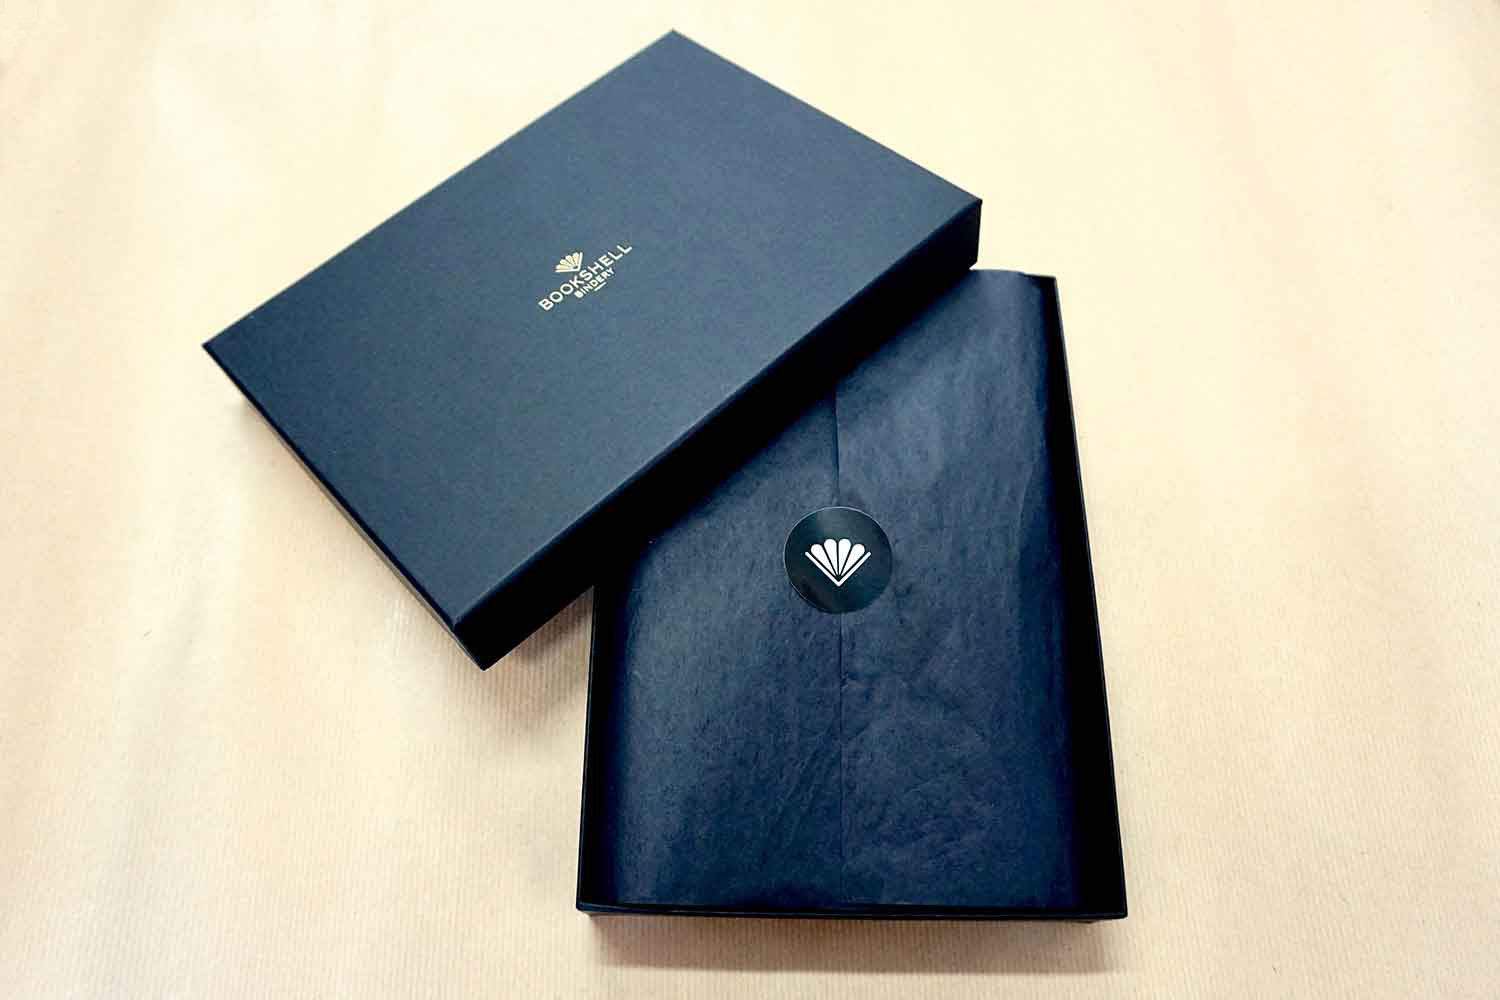 Leather iphone case from Bookshell arrives ready to gift in beautiful packaging